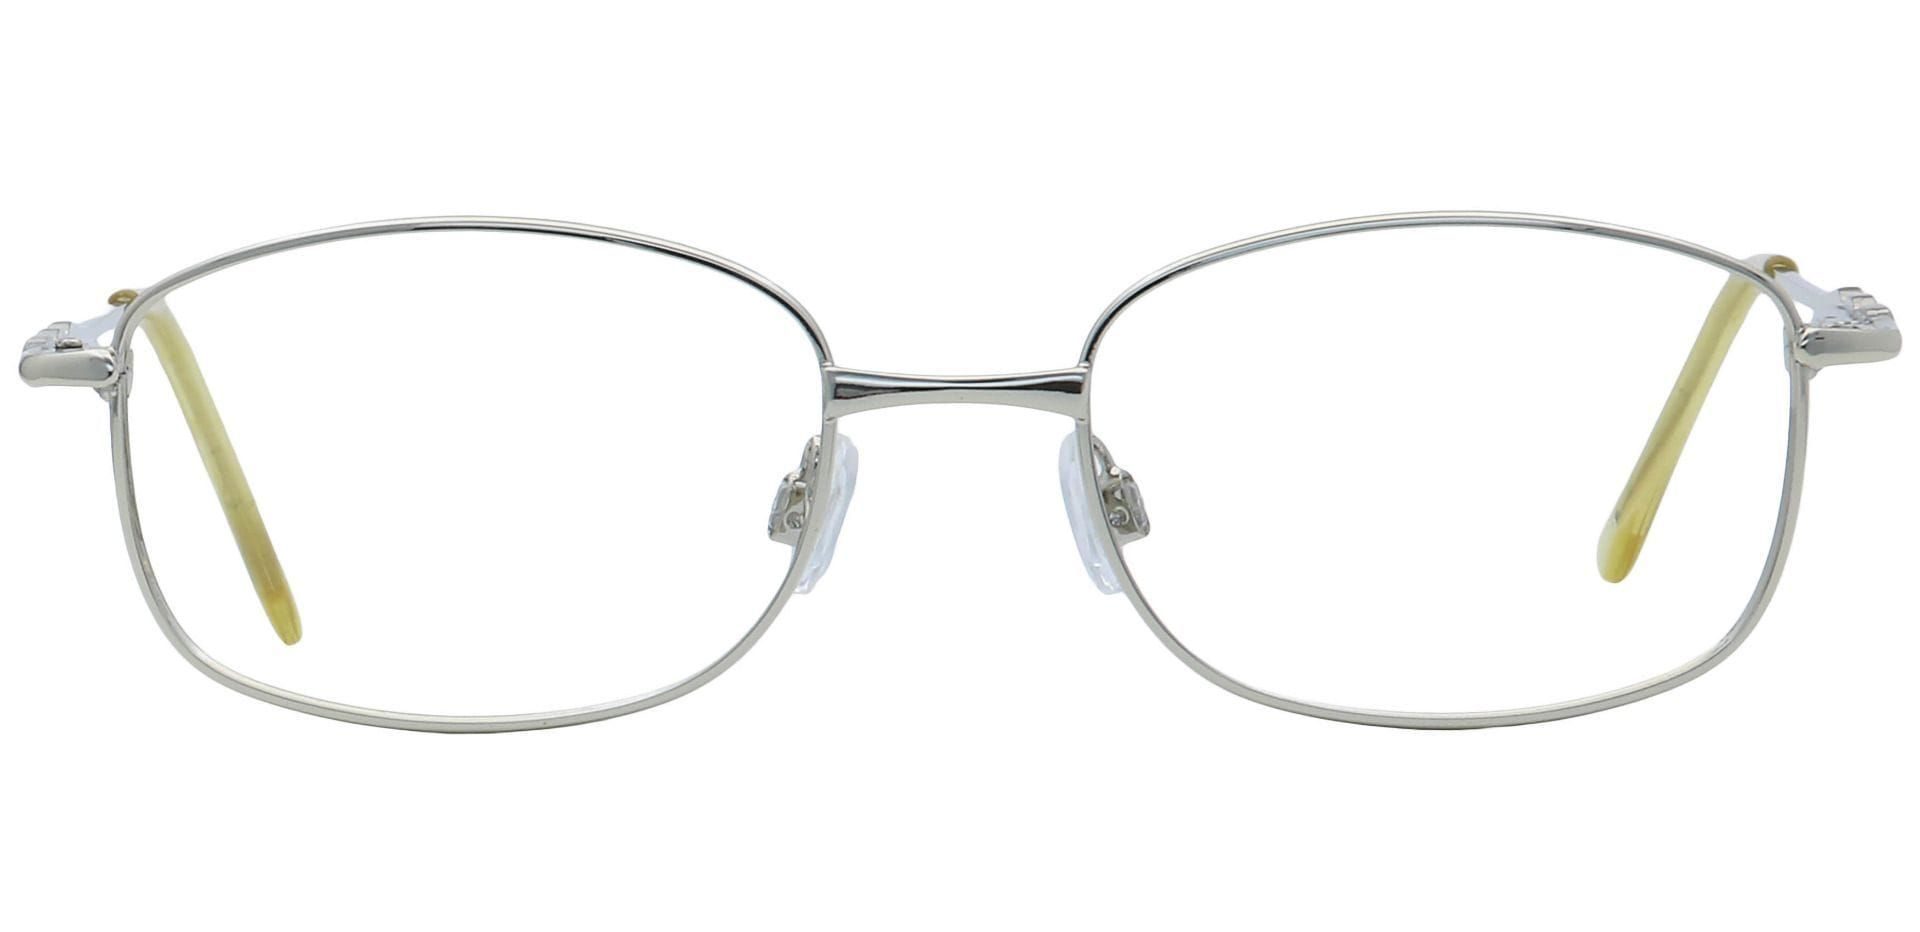 Halley Oval Reading Glasses - Silver